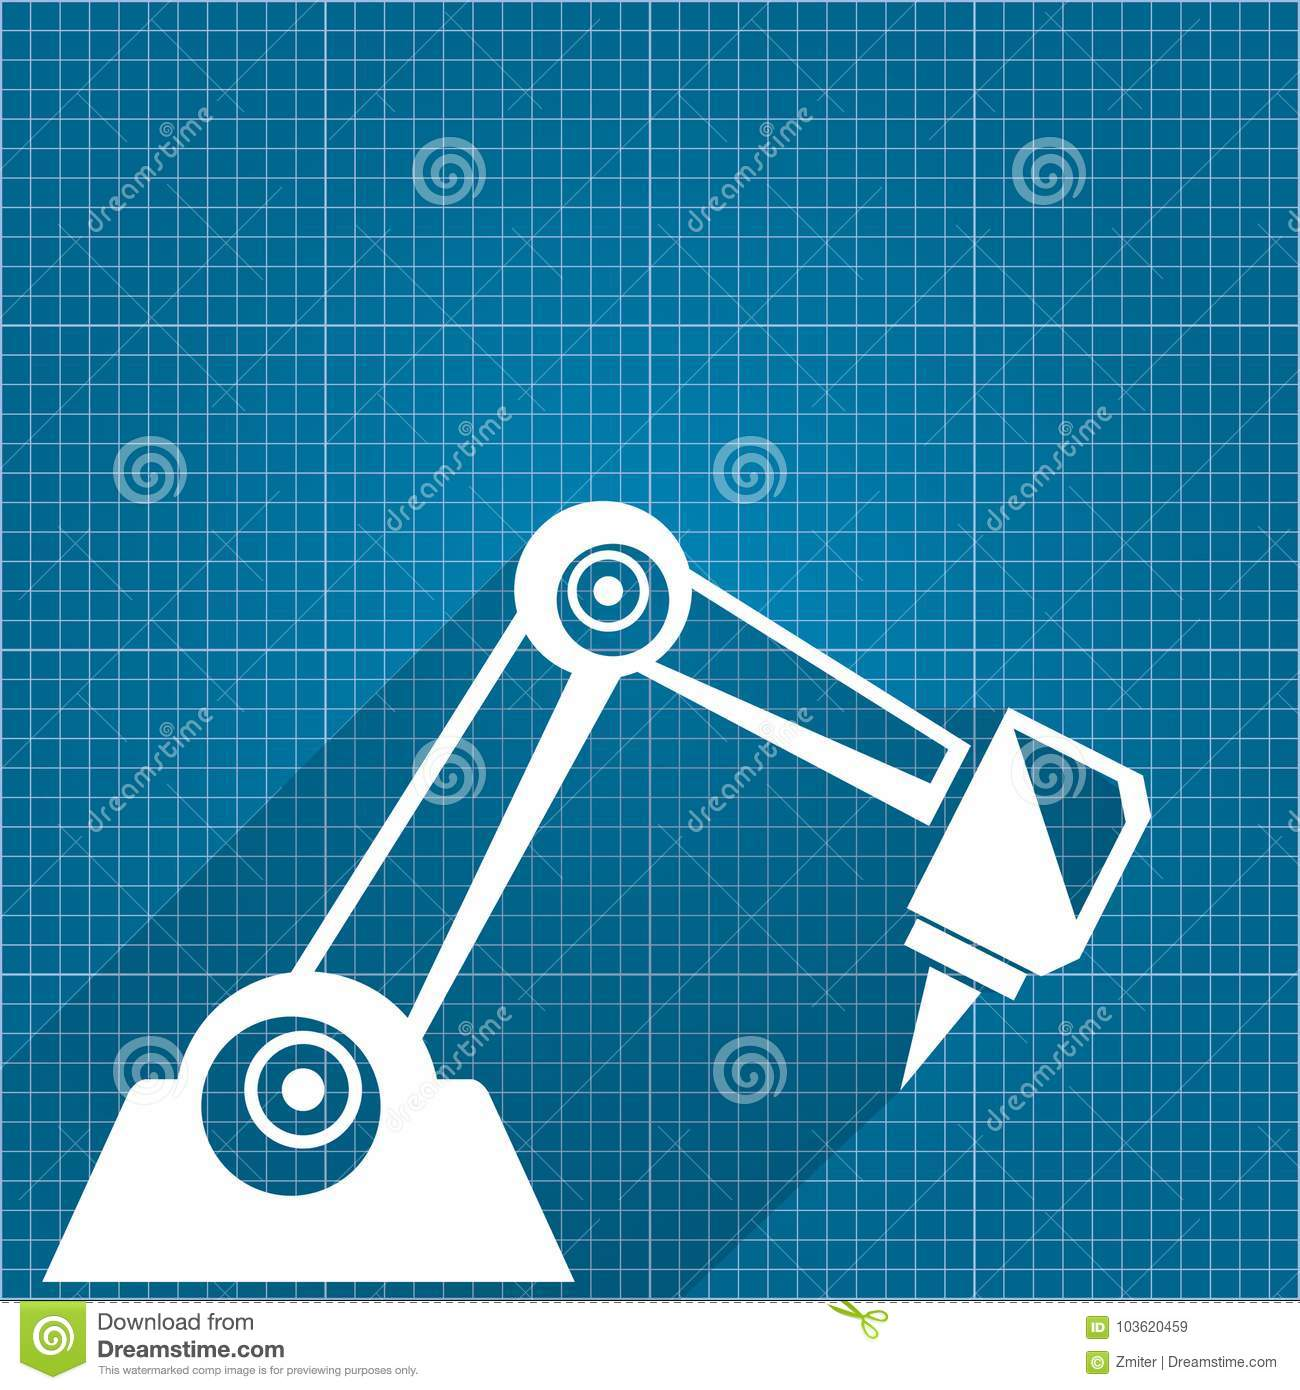 Vector robotic arm symbol on blueprint paper background robot hand vector robotic arm symbol on blueprint paper background robot hand technology background design engineering icon malvernweather Images